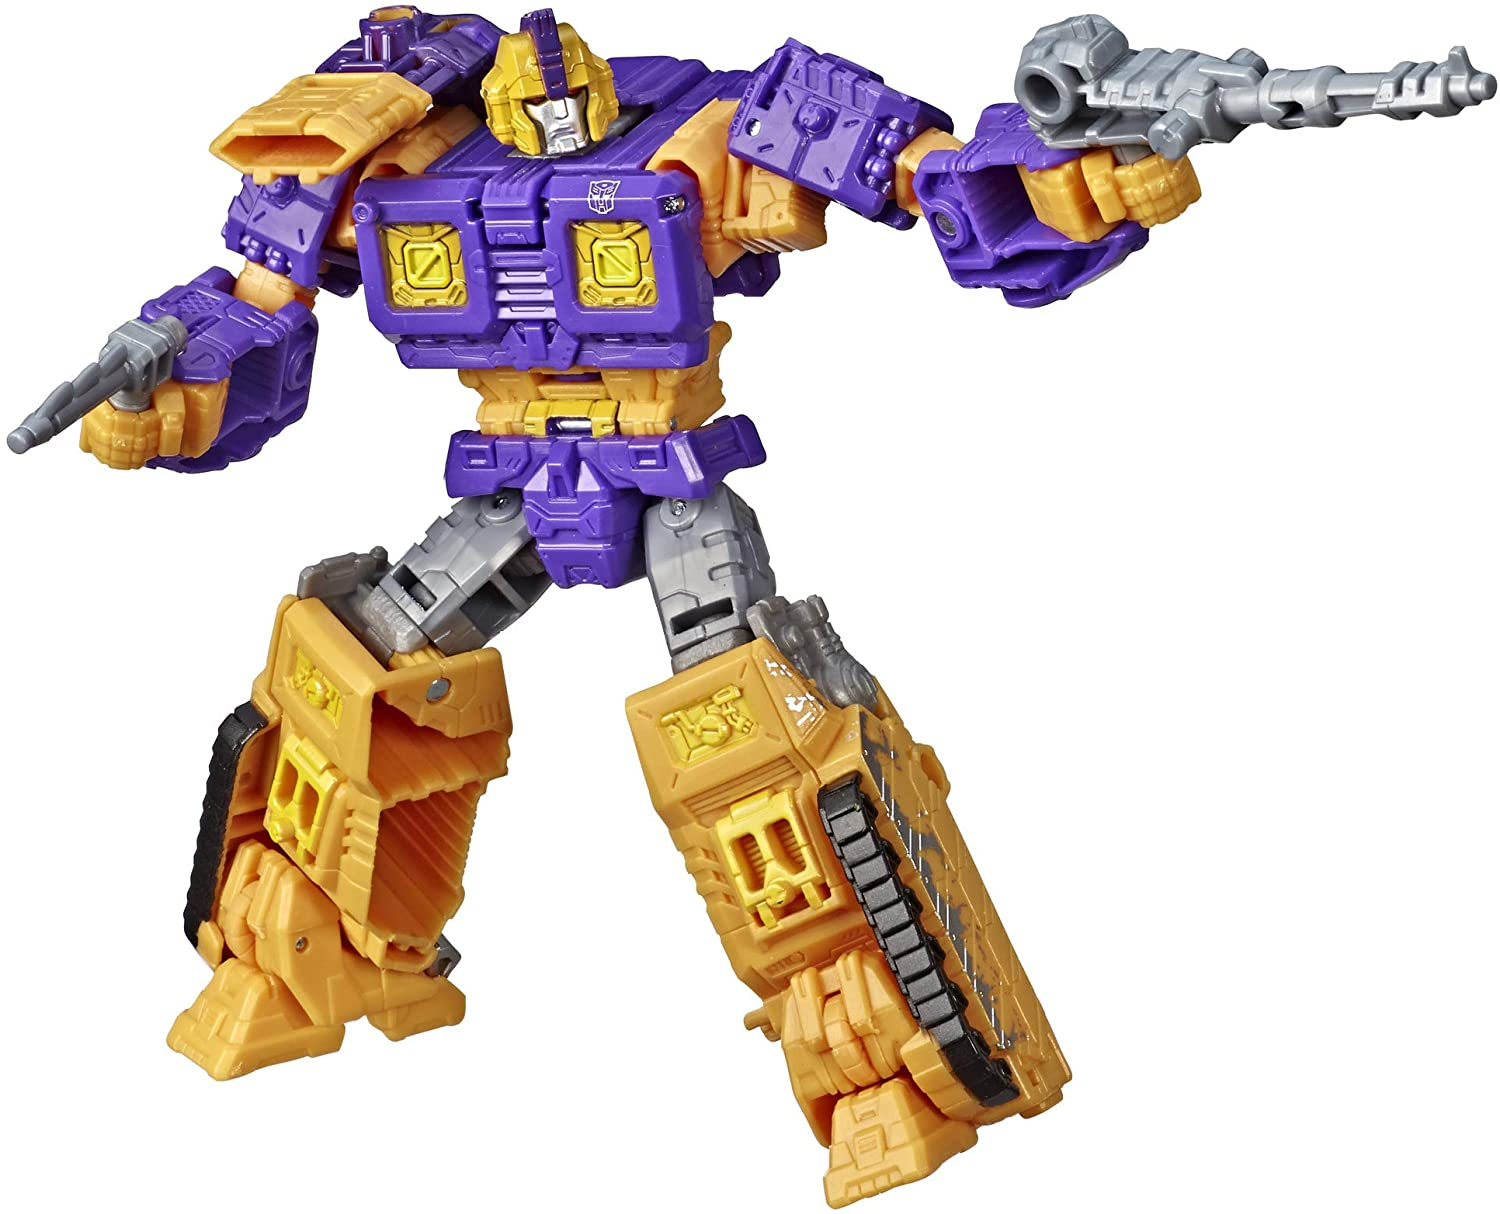 Transformers Toys Generations War for Cybertron Deluxe WFC-S42 Autobot Impactor Figure - Siege Chapter - Adults and Kids Ages 8 and Up, 5.5-inch